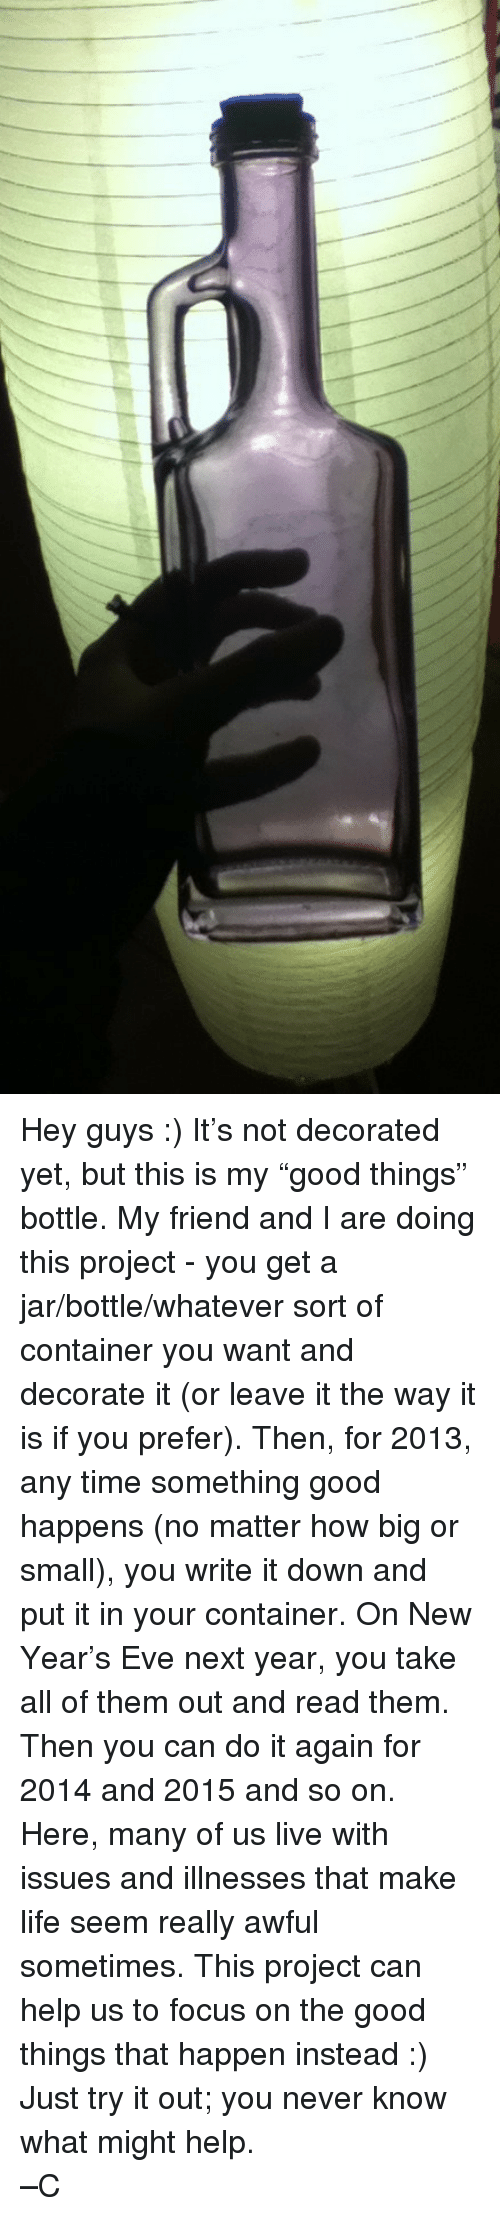 Do It Again, Life, and New Year's: <p>Hey guys :) It&rsquo;s not decorated yet, but this is my &ldquo;good things&rdquo; bottle. My friend and I are doing this project - you get a jar/bottle/whatever sort of container you want and decorate it (or leave it the way it is if you prefer). Then, for 2013, any time something good happens (no matter how big or small), you write it down and put it in your container. On New Year&rsquo;s Eve next year, you take all of them out and read them. Then you can do it again for 2014 and 2015 and so on. </p>  <p>Here, many of us live with issues and illnesses that make life seem really awful sometimes. This project can help us to focus on the good things that happen instead :) Just try it out; you never know what might help.</p>  <p>&ndash;C</p>